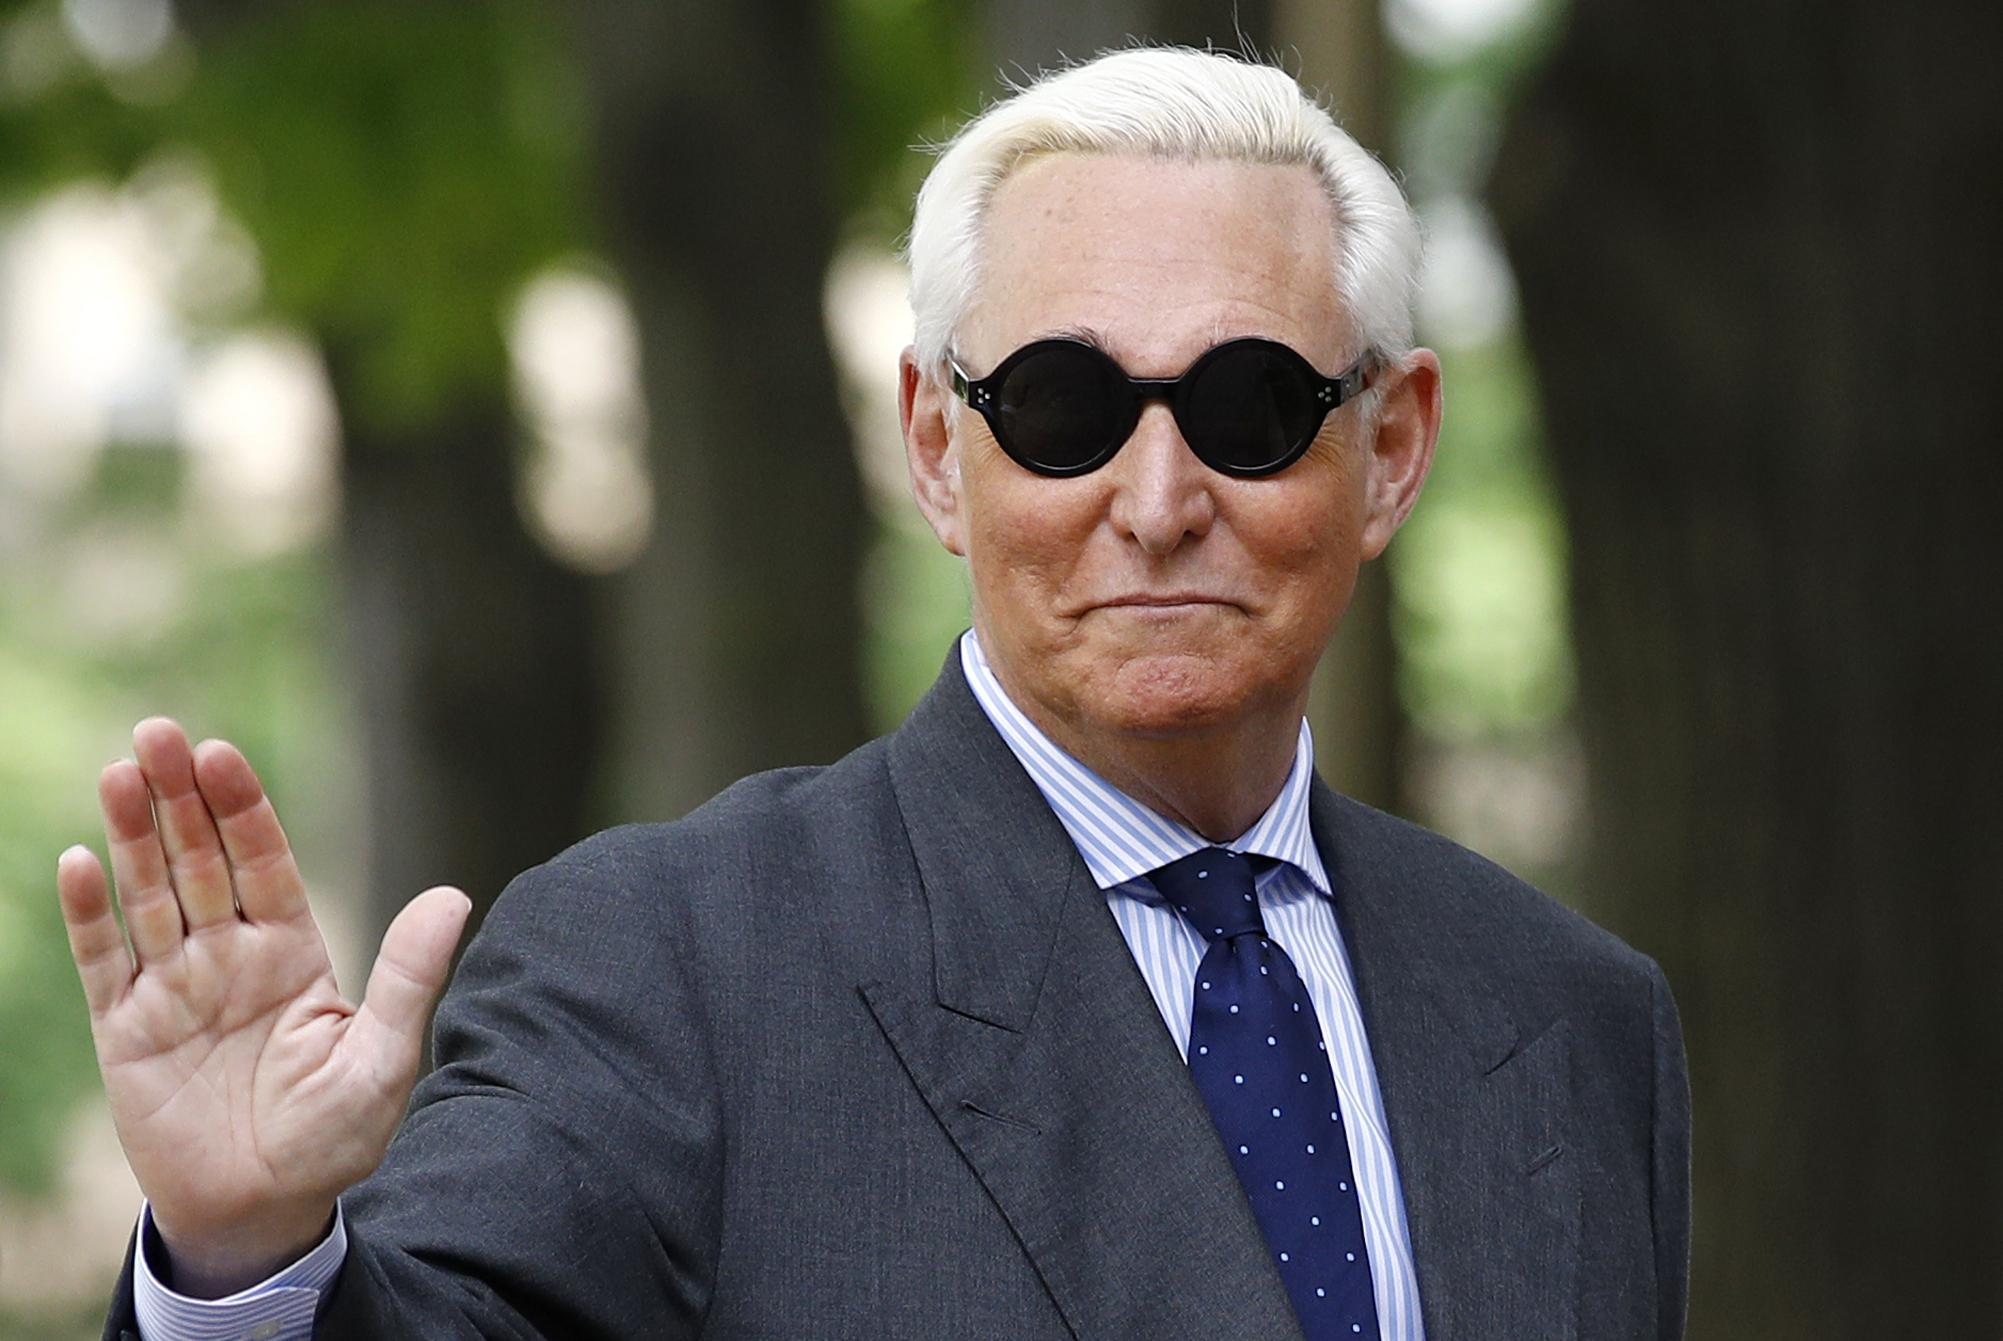 Judge may order prosecutors to give unredacted portions of Mueller report to Roger Stone